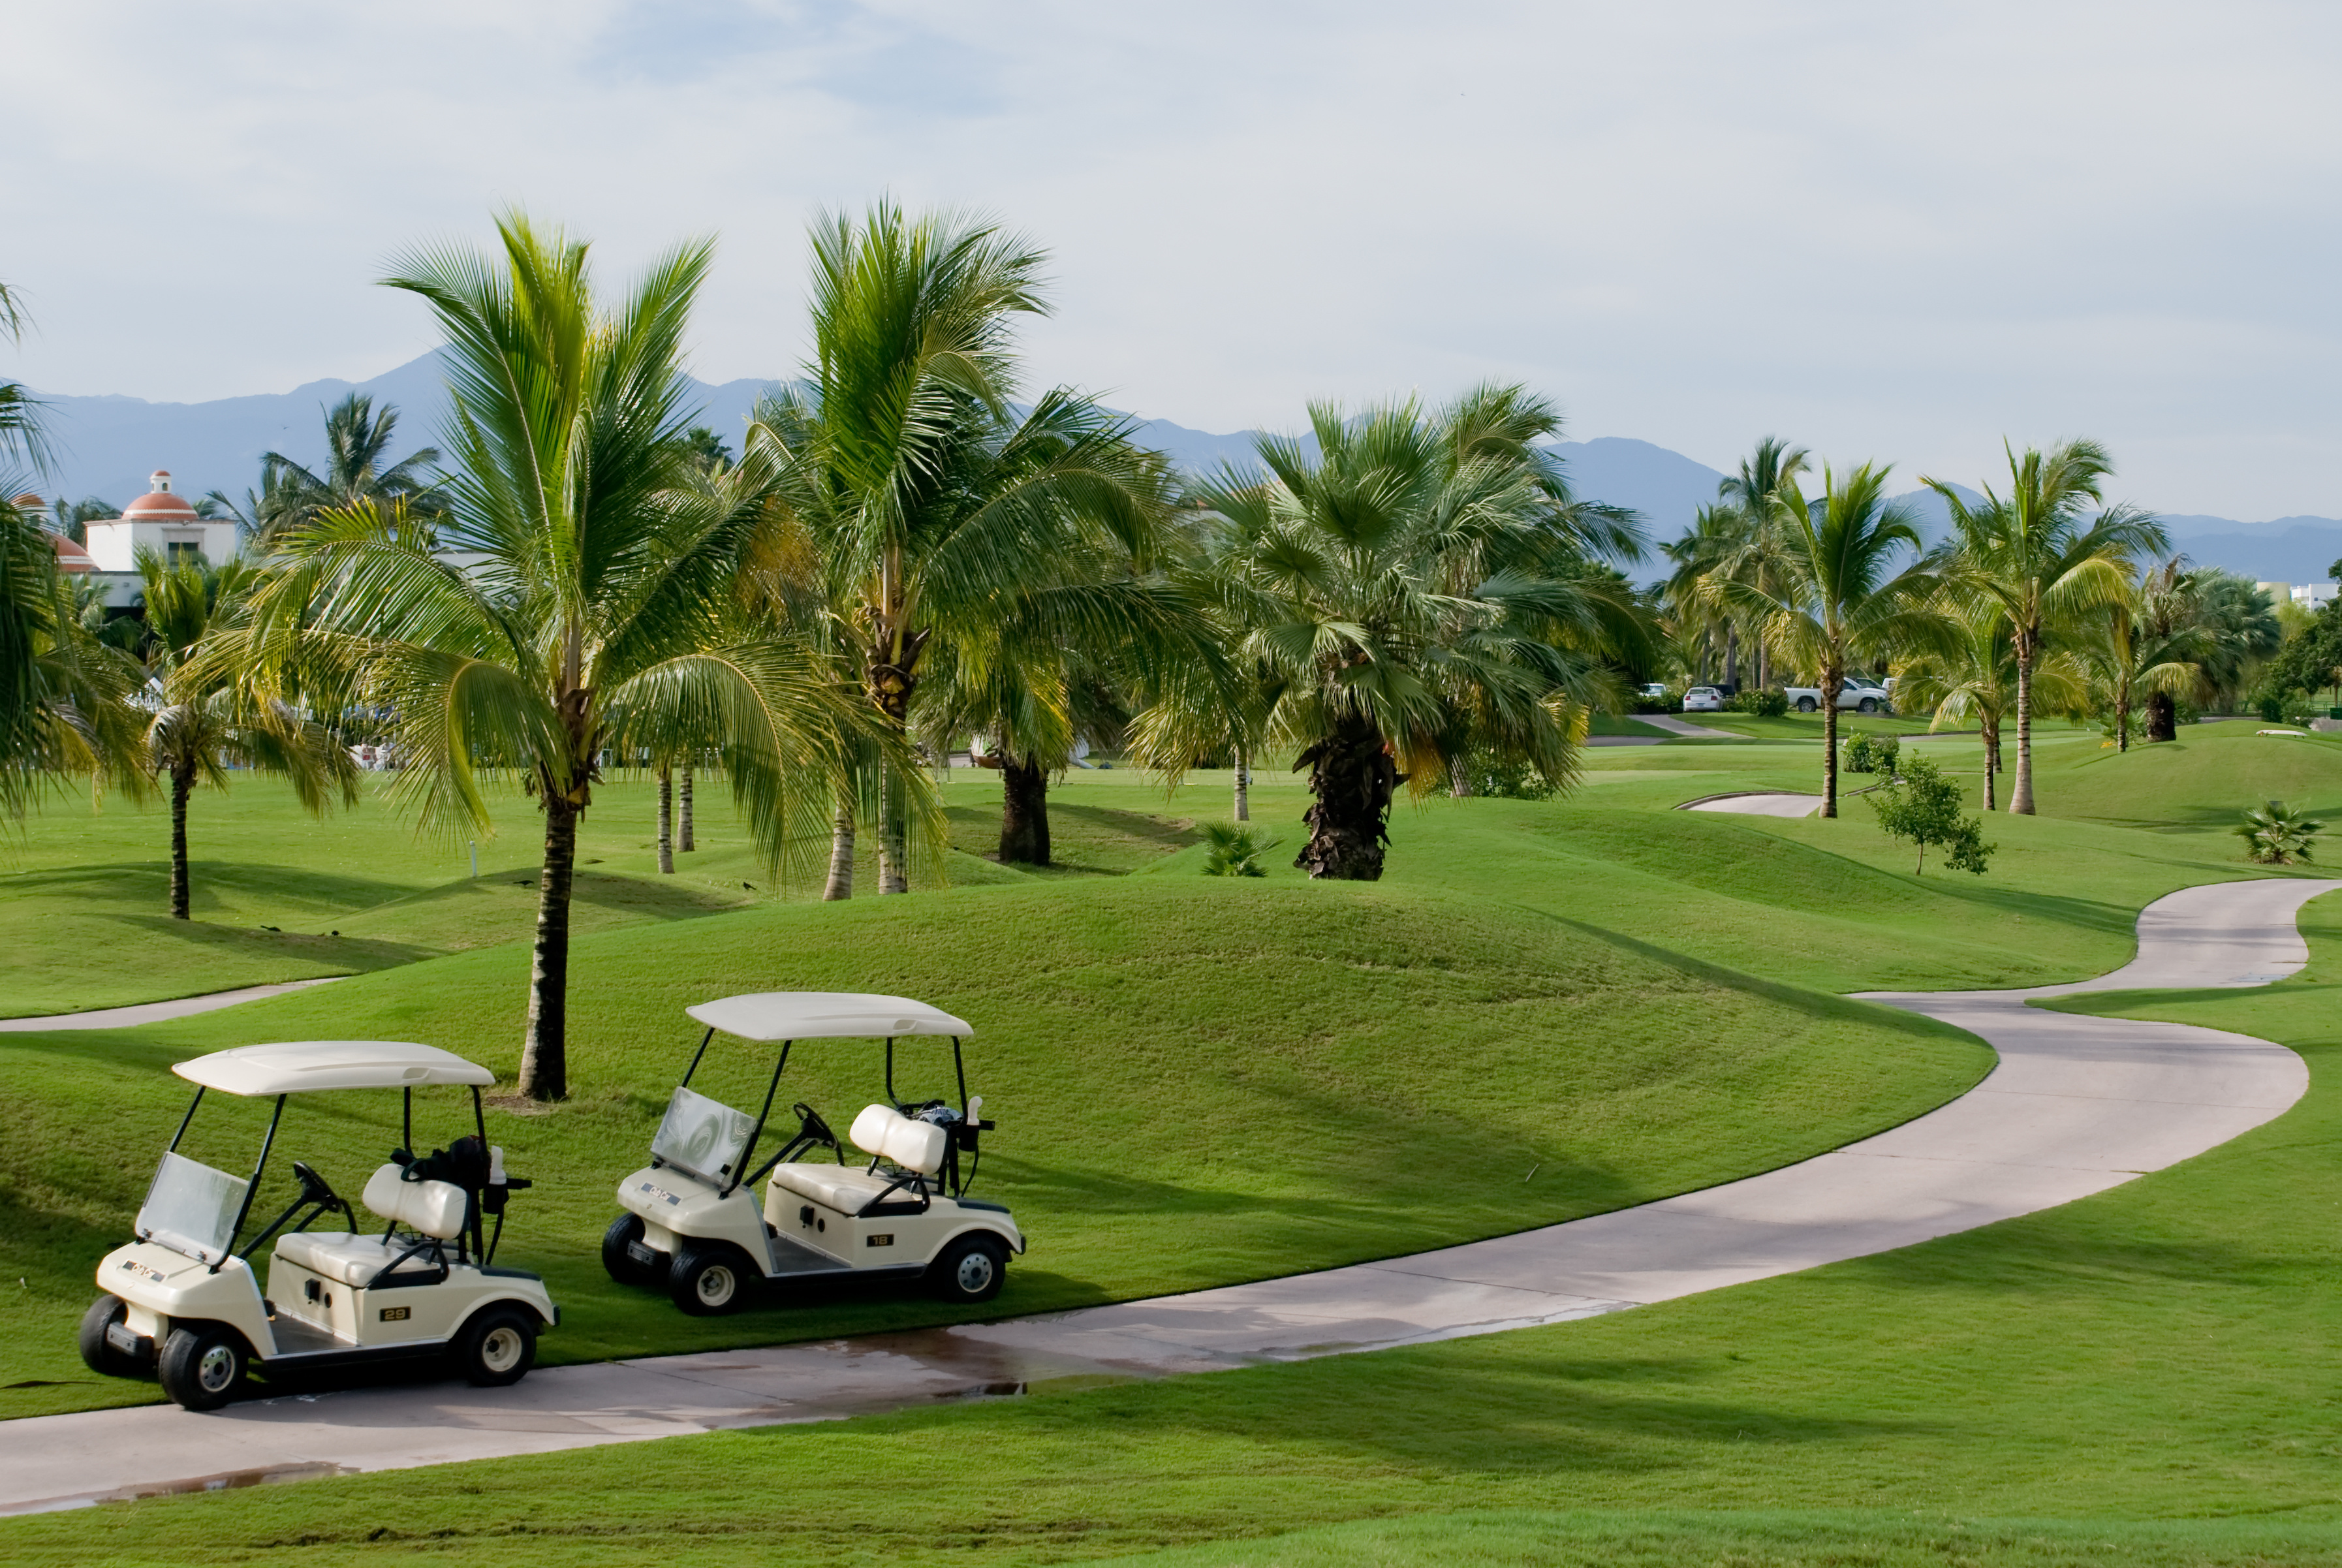 Golf Courses in Puerto Vallarta and the Rivera Nayarit